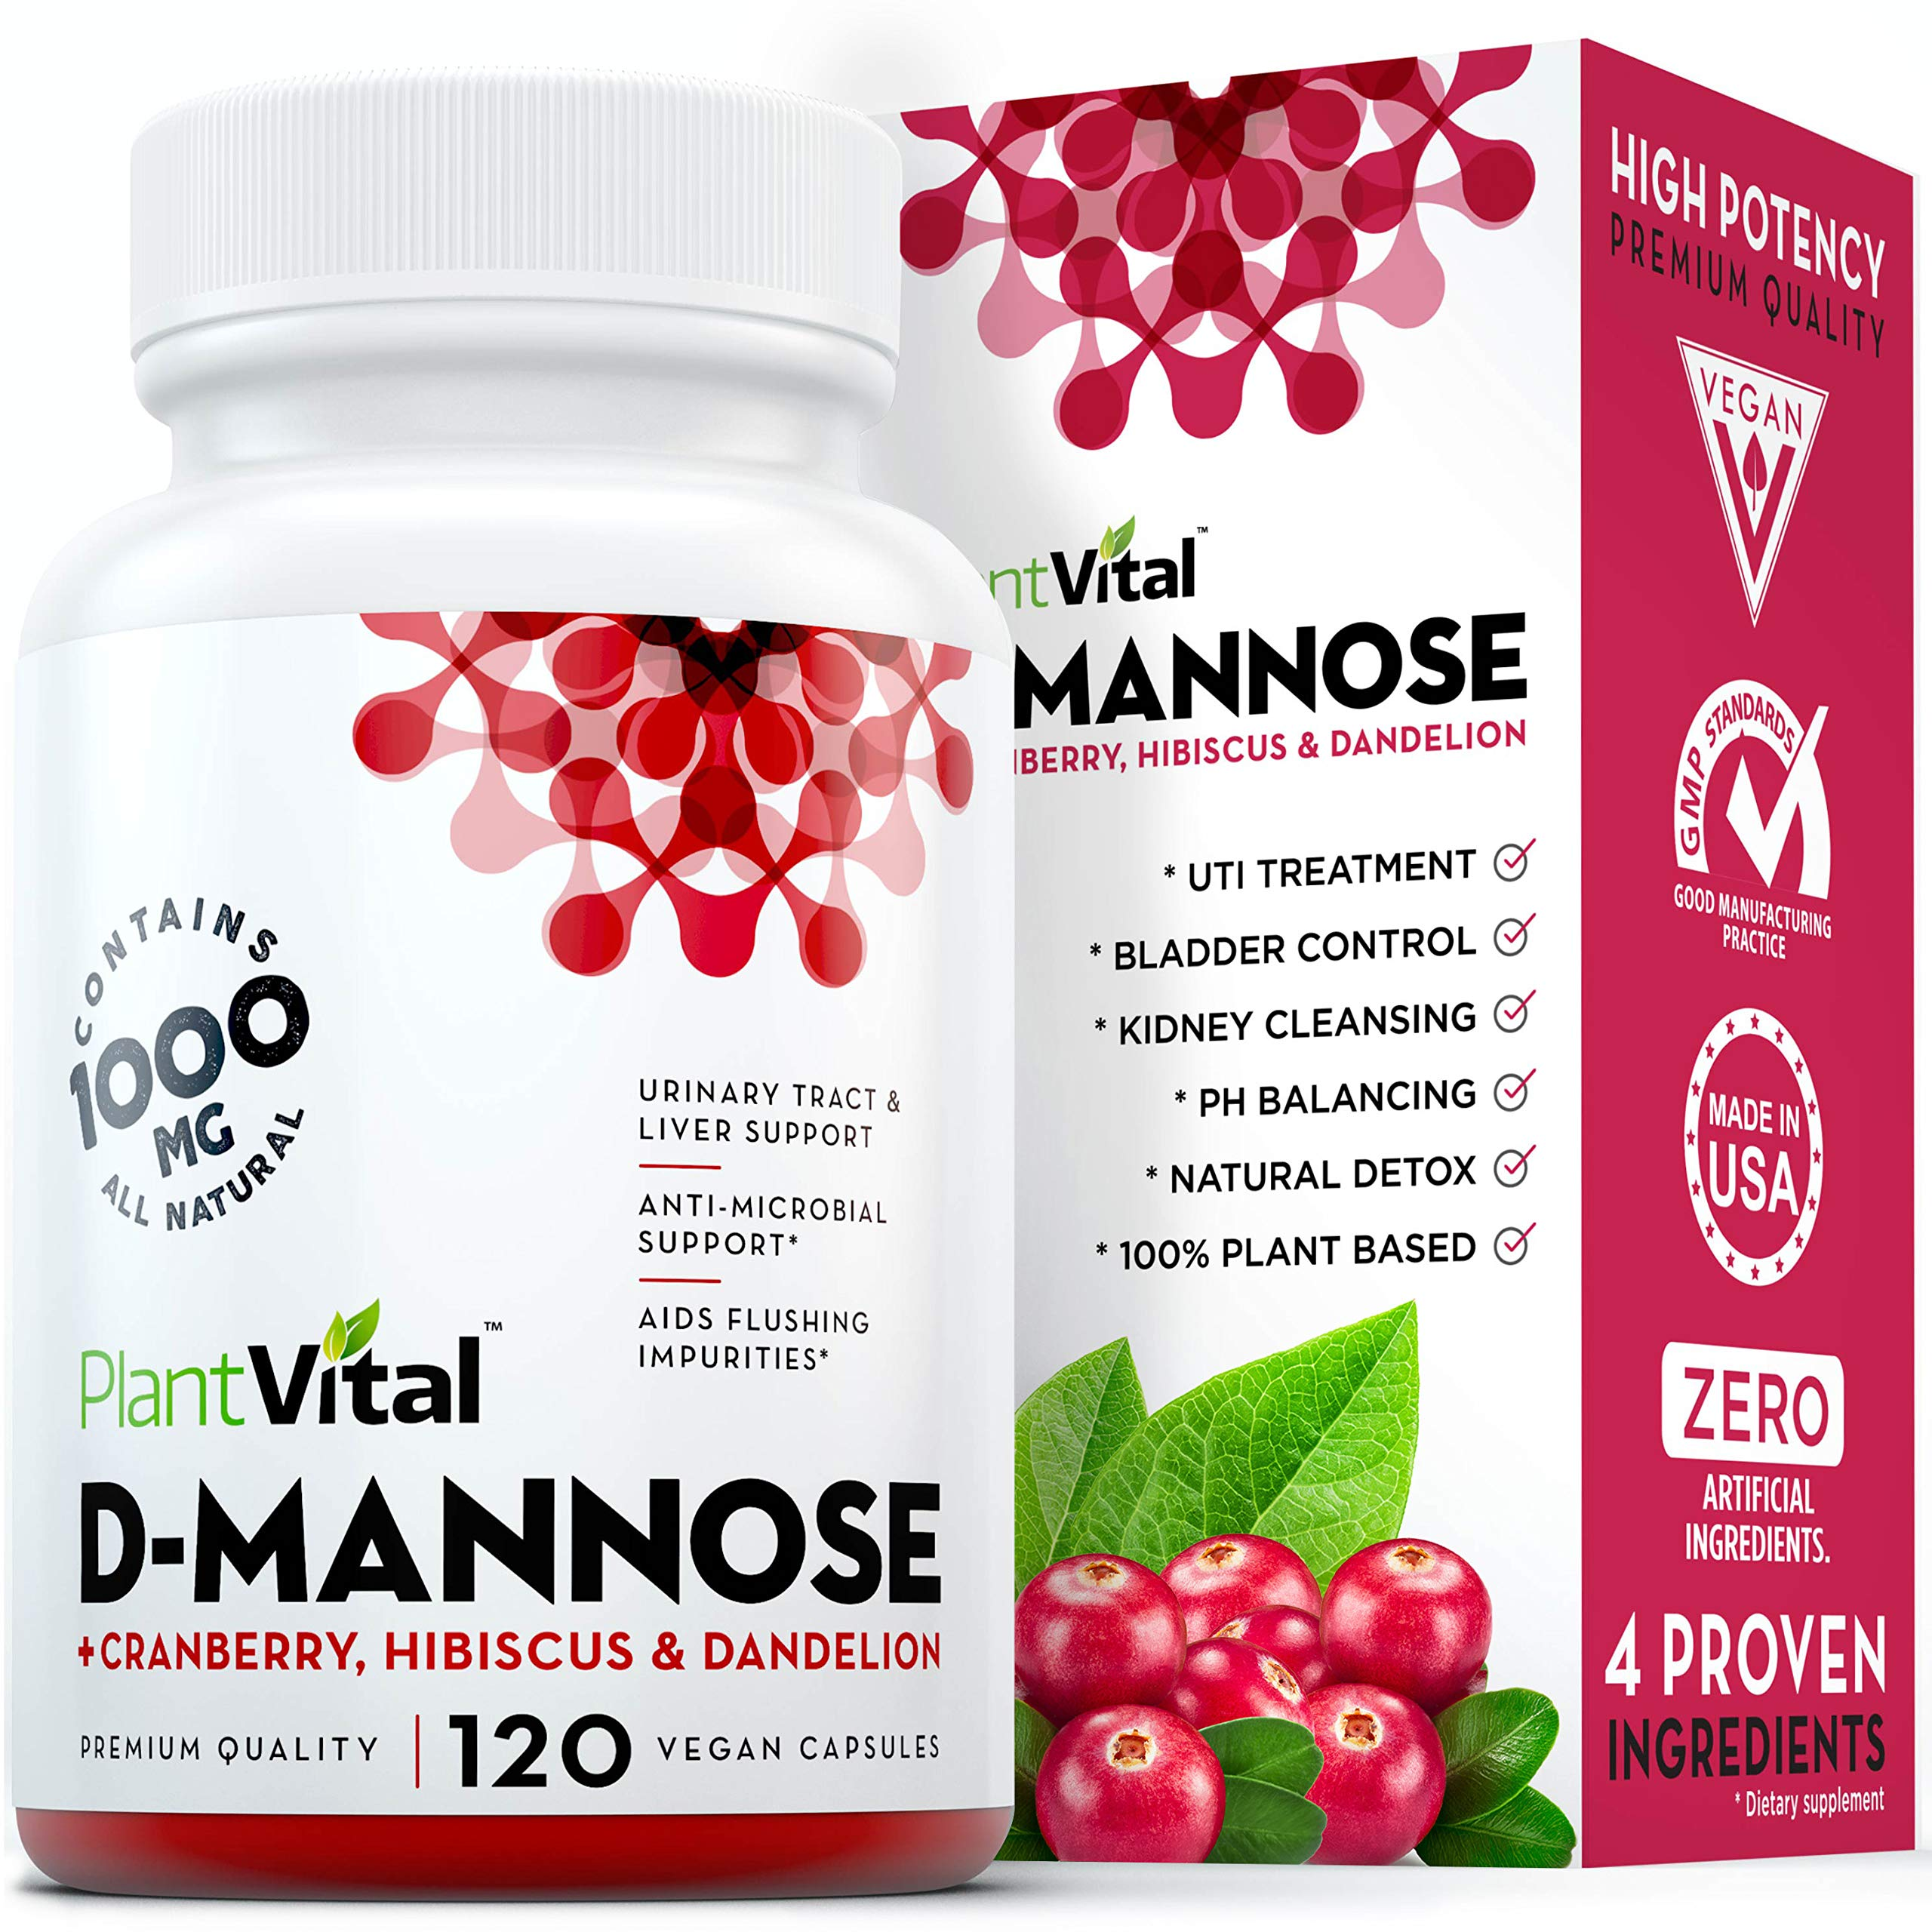 New! D-Mannose 1000mg w Cranberry [HIGH Potency] Urinary Tract Treatment, Bladder Control, Kidney Cleanse & UTI Support. 100% Natural Detox. Plus Hibiscus & Dandelion. 2 Months Supply by Plantvital